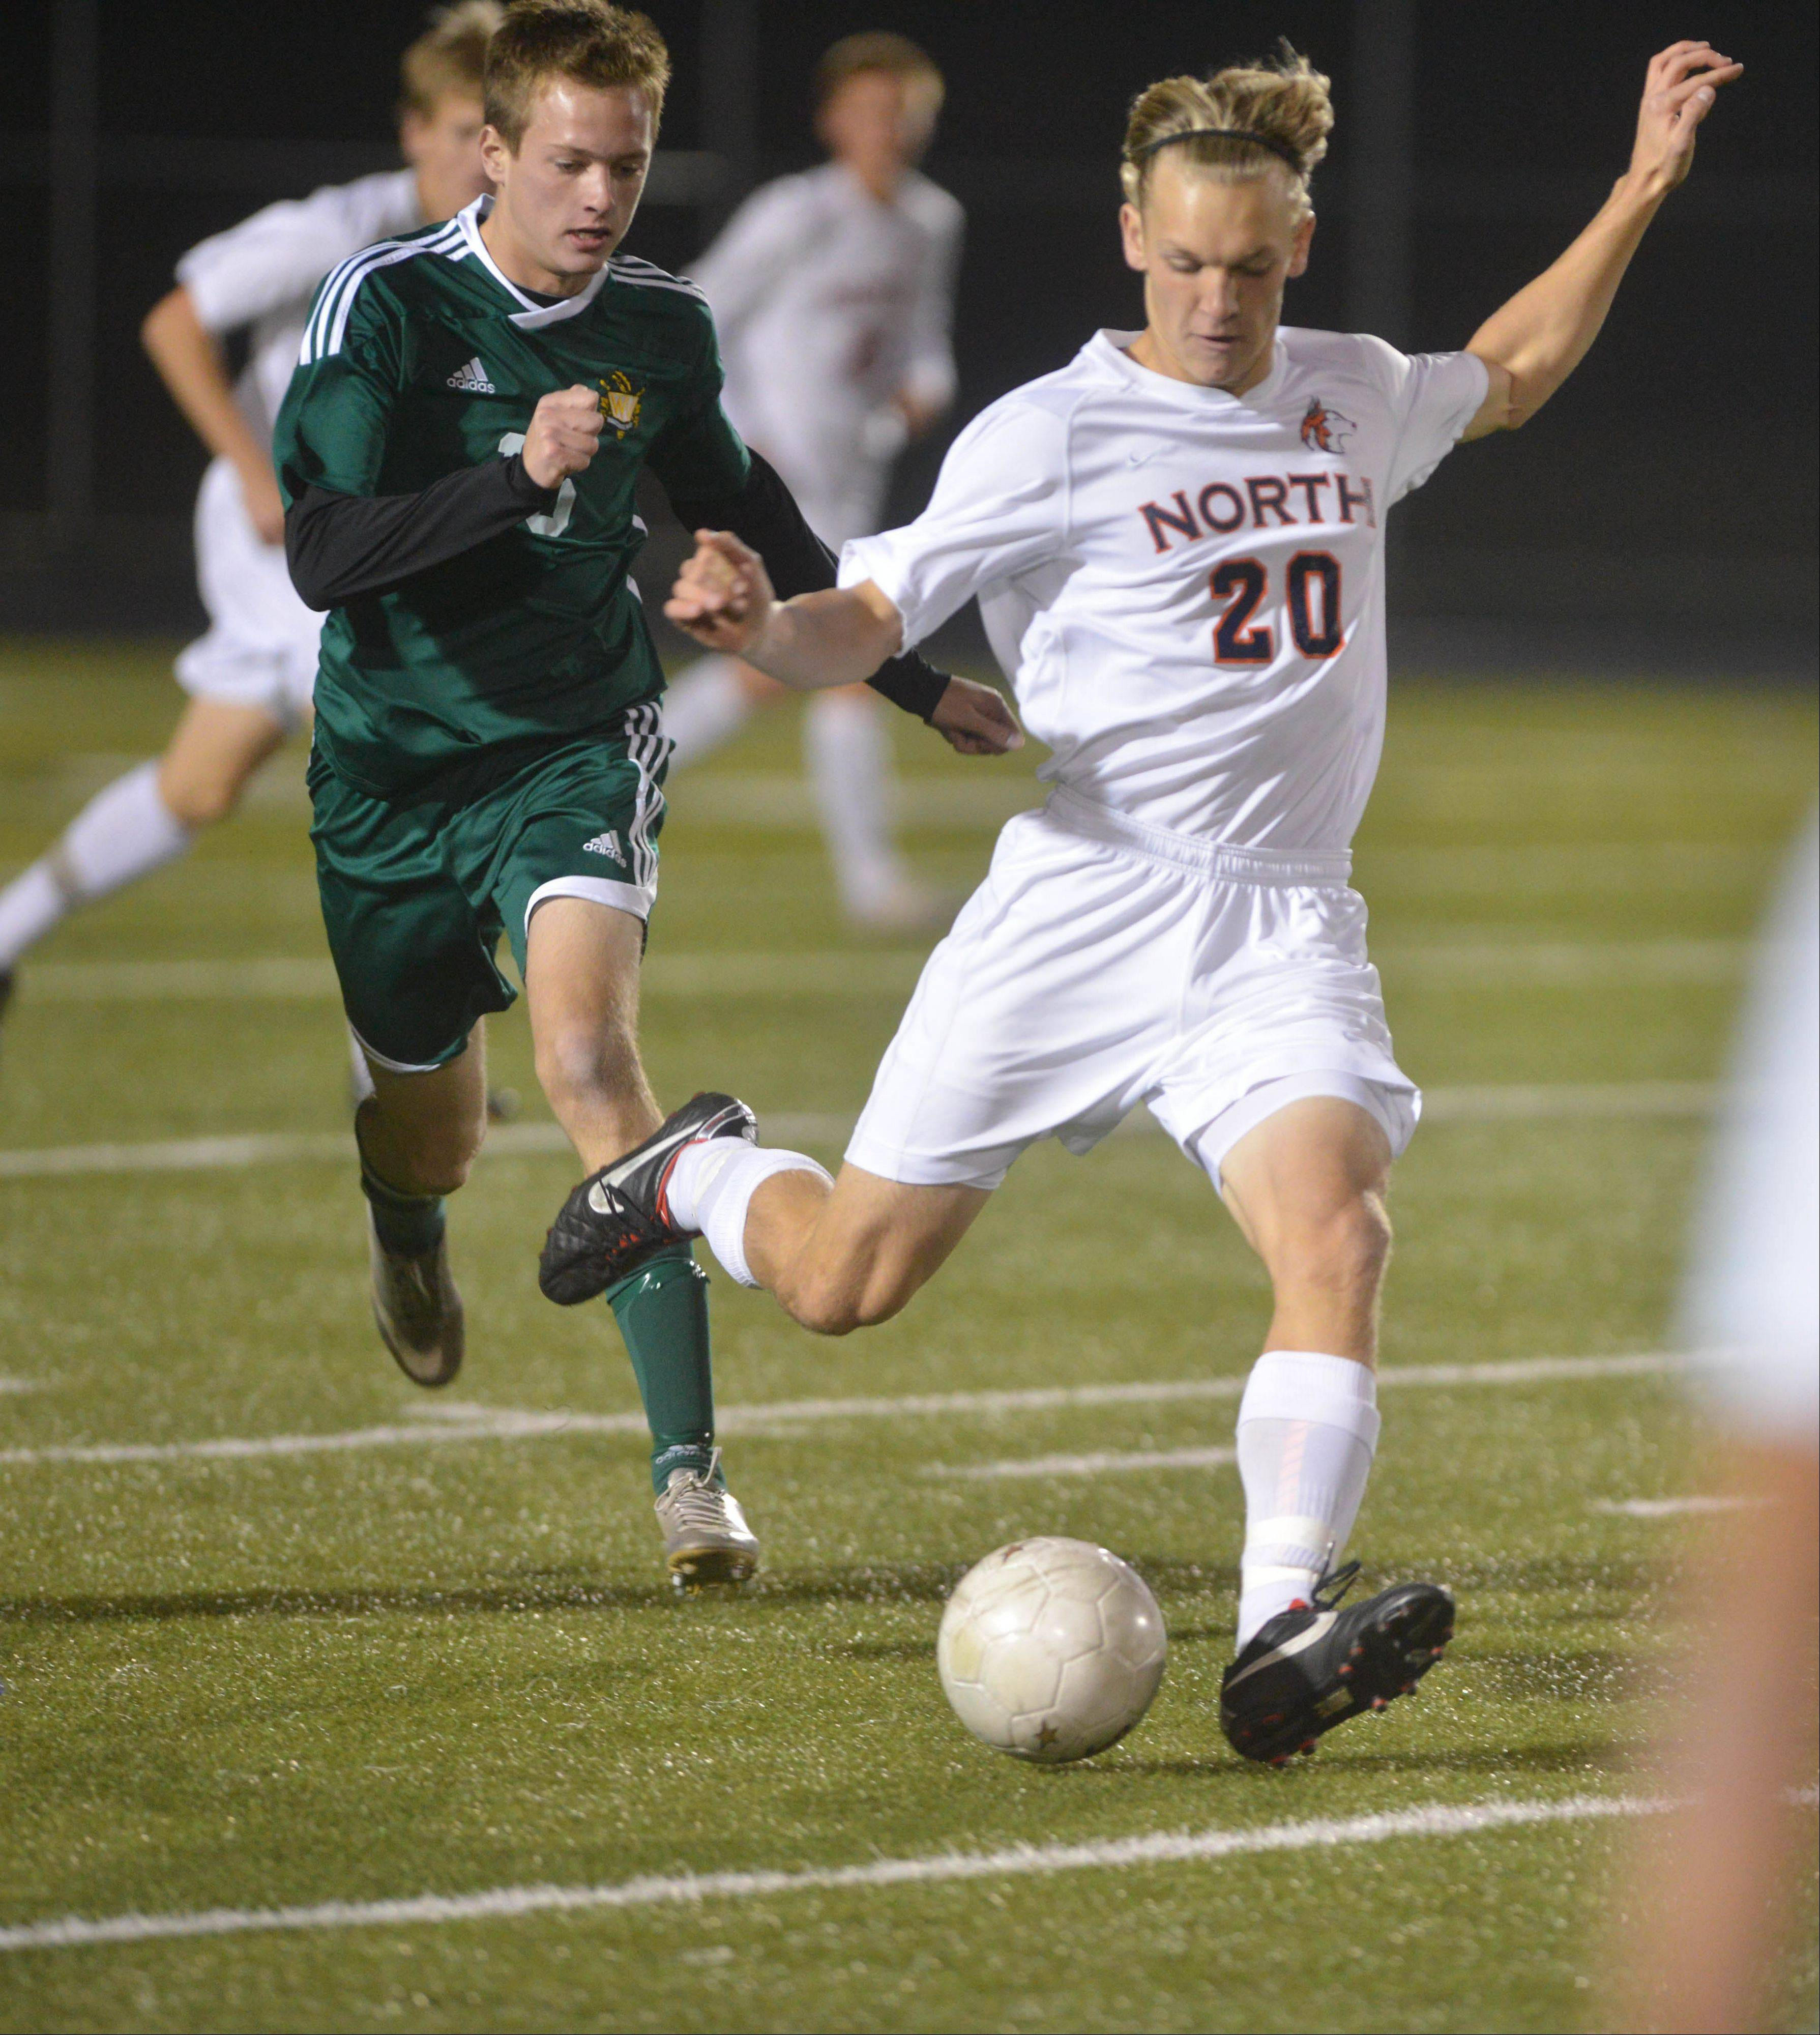 Grant Borg of Naperville North moves the ball down feild during the Naperville North vs. Waubonsie Valley boys soccer Class 3A Metea Valley sectional semifinals game Tuesday.